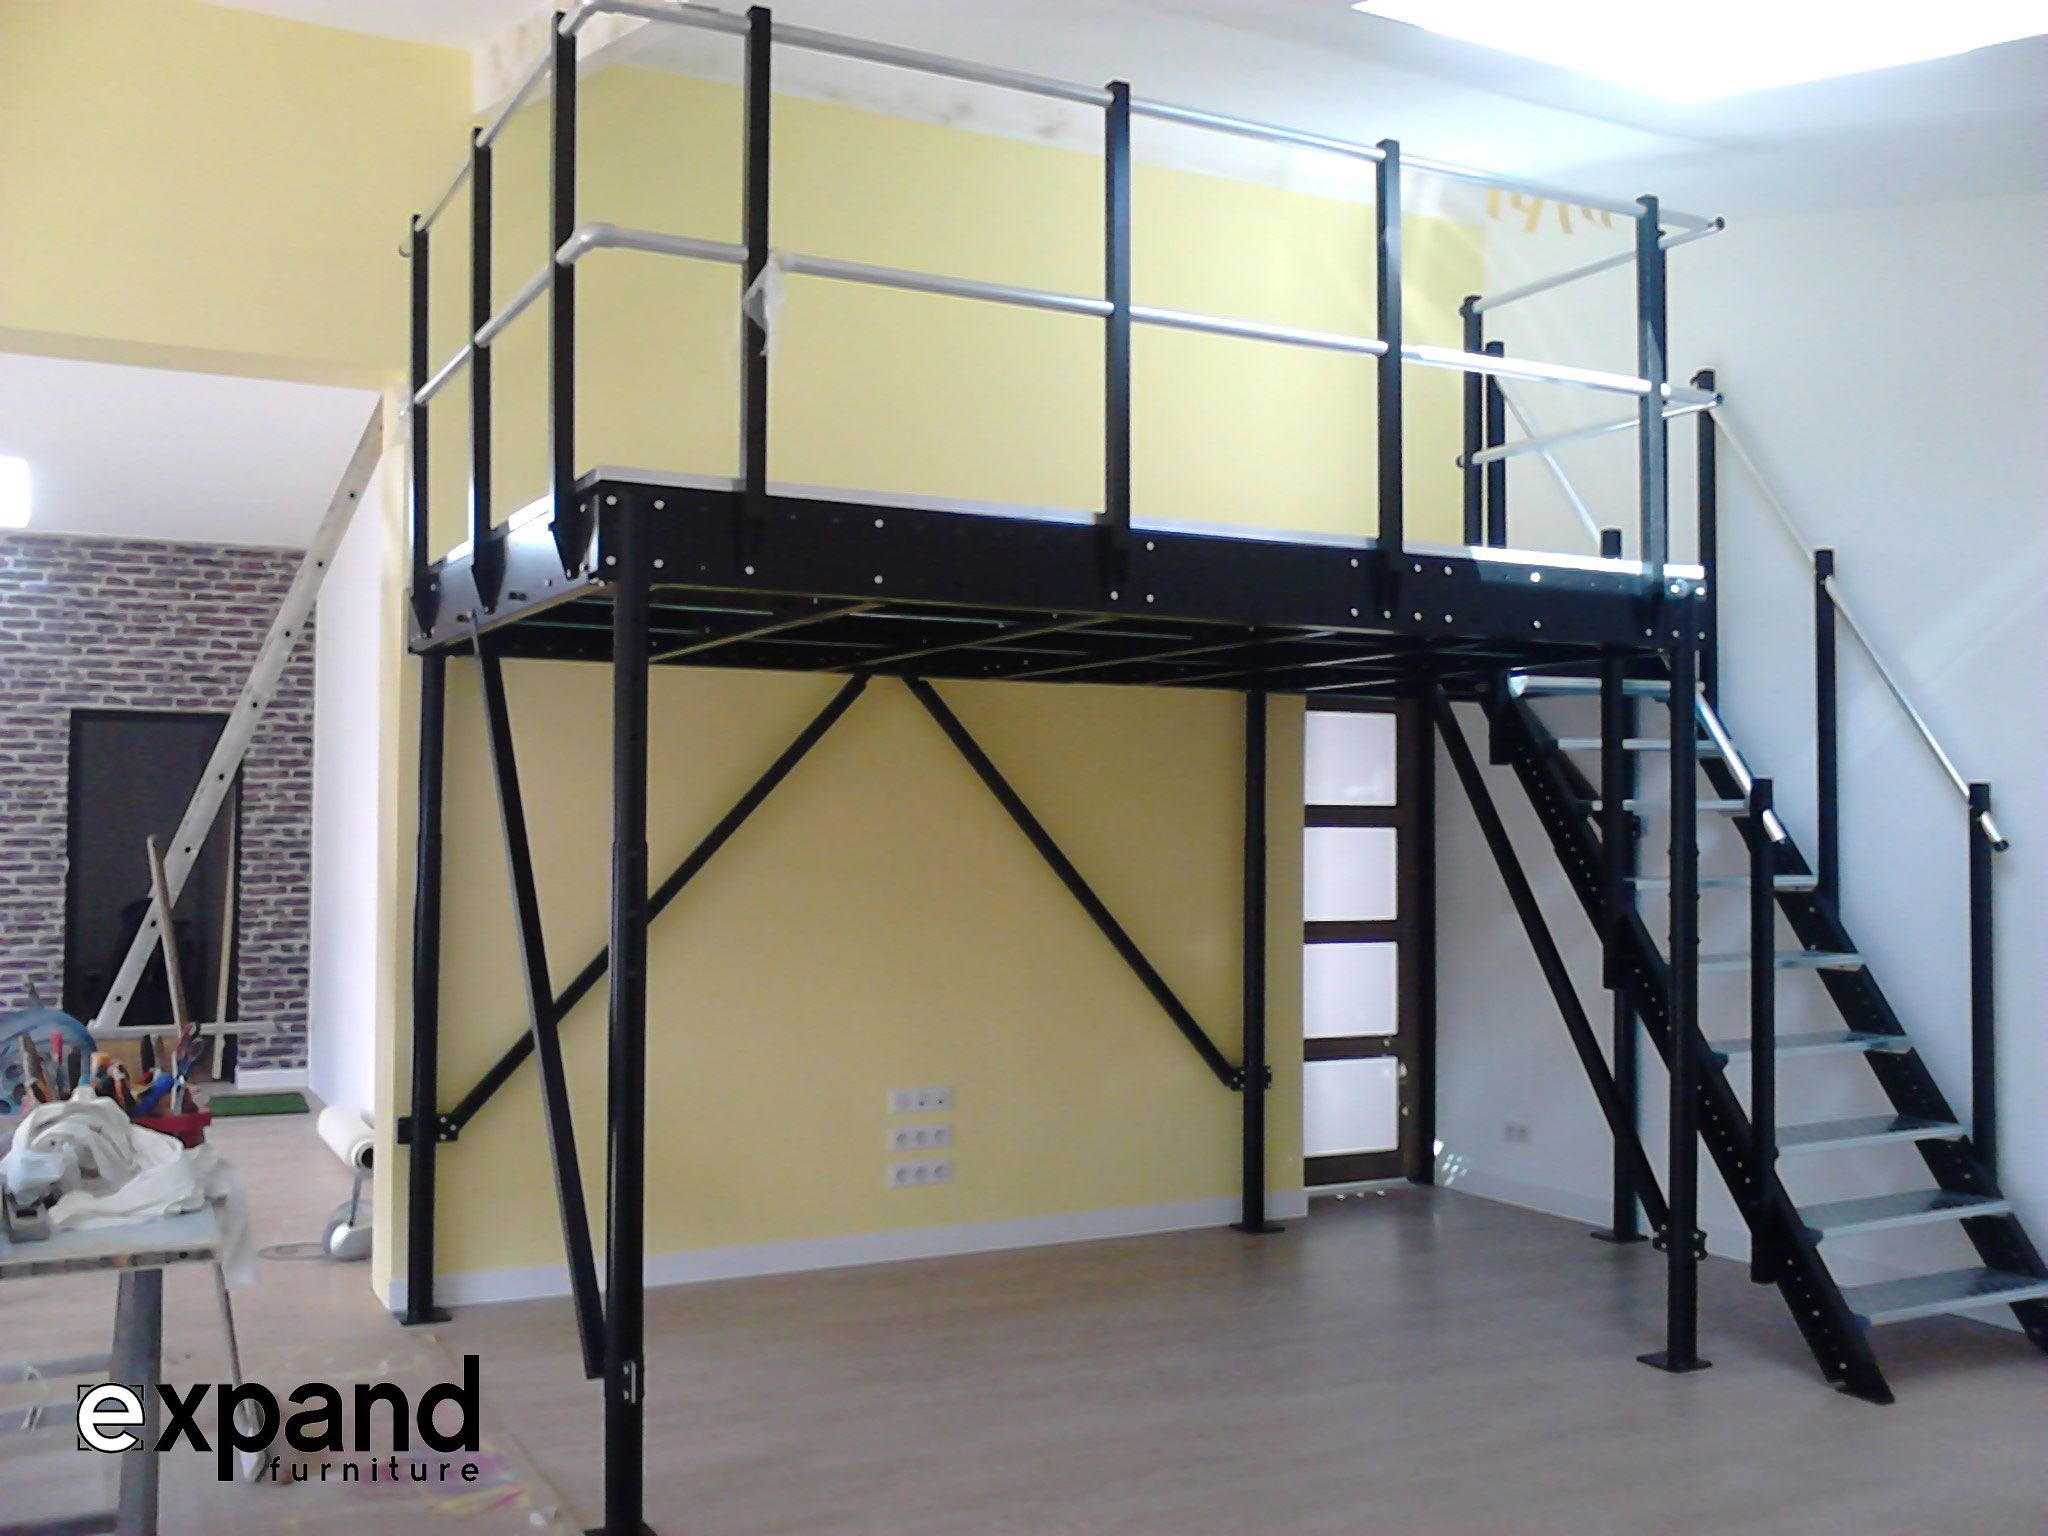 Loft bed with stairs diy  Loft Systems Including Parts For Making Lofts u DIY Loft Kits